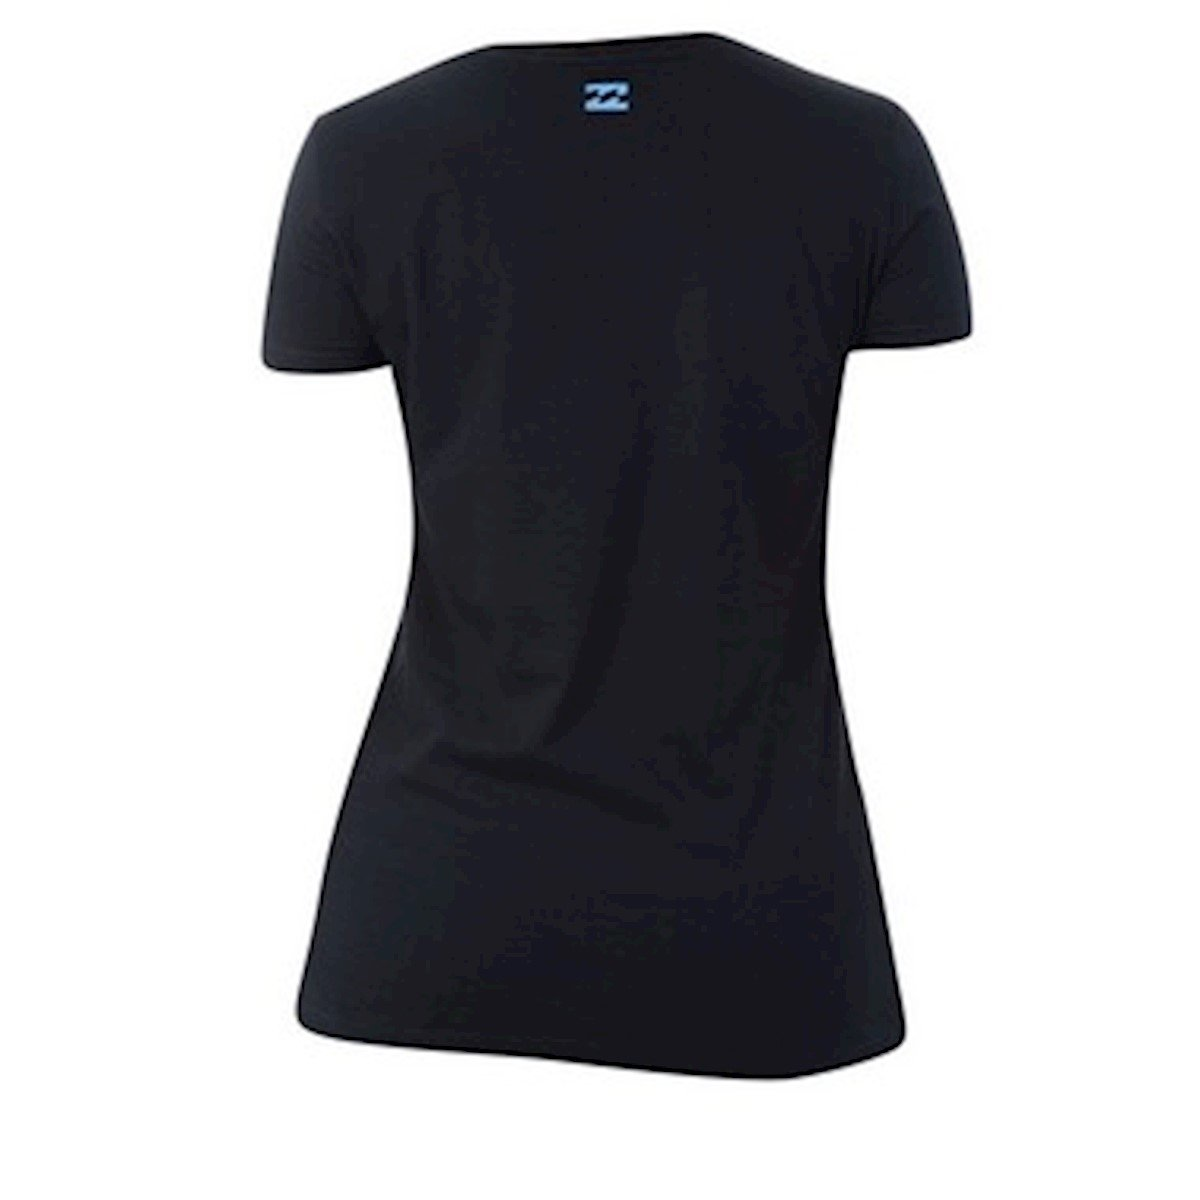 Billabong Daze Dream Daze Preto Dream Billabong Billabong Feminina Dream Blusa Daze Feminina Blusa Blusa Preto r7q5r